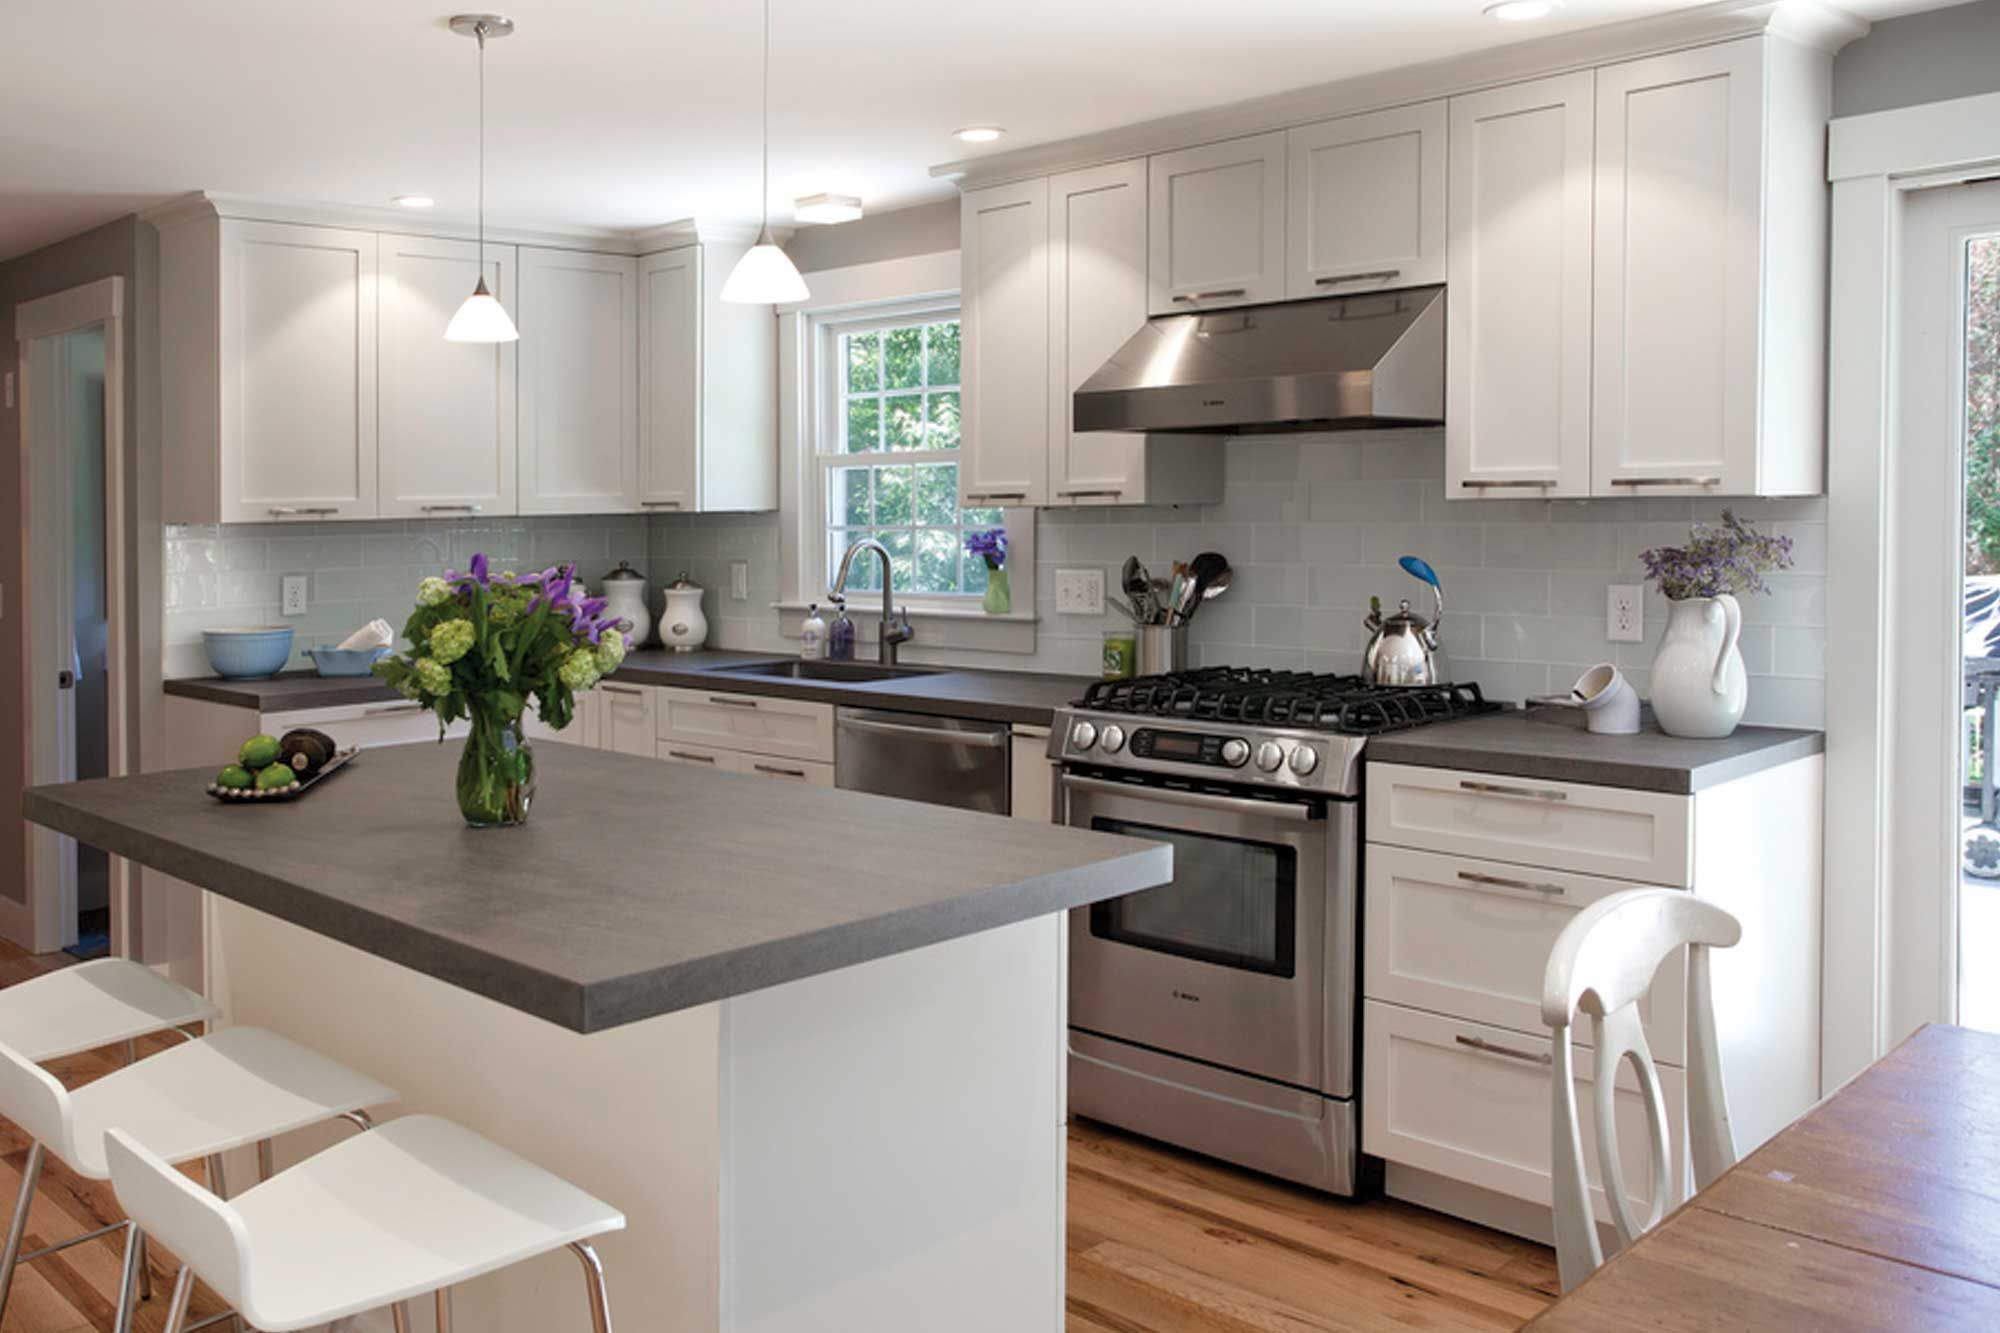 Executive Cabinetry Custom Eco Friendly Cabinets Kitchen Bath Office Executive Cabinet Grey Countertops Gray Kitchen Countertops Kitchen Cabinet Design